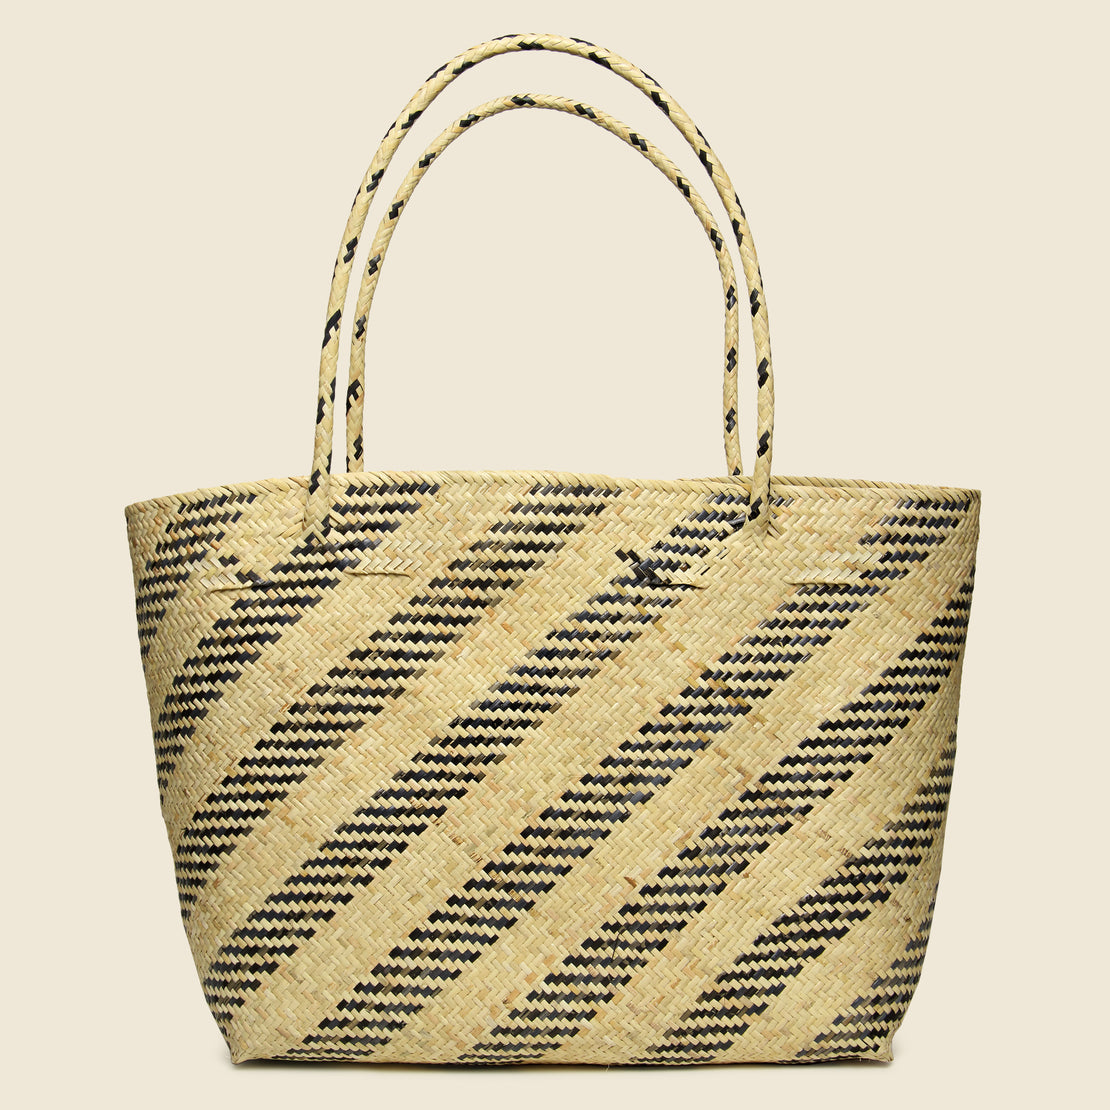 Bembien Gianna Rattan Bag - Natural Diagonal Stripe